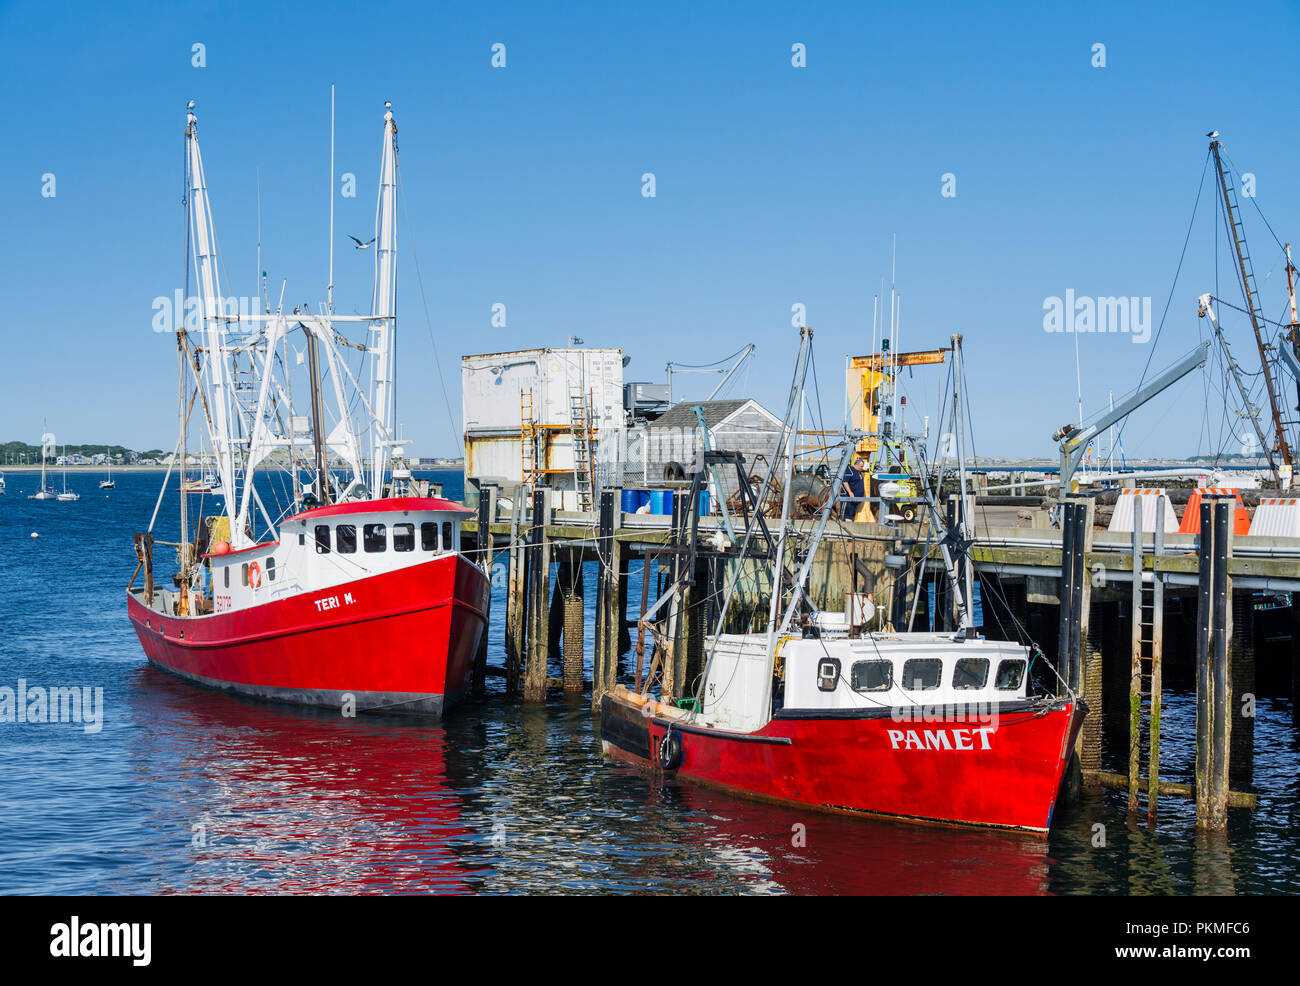 Commercial fishing boats docked at MacMillan Wharf, Provincetown, Cape Cod, Massachusetts, USA. - Stock Image